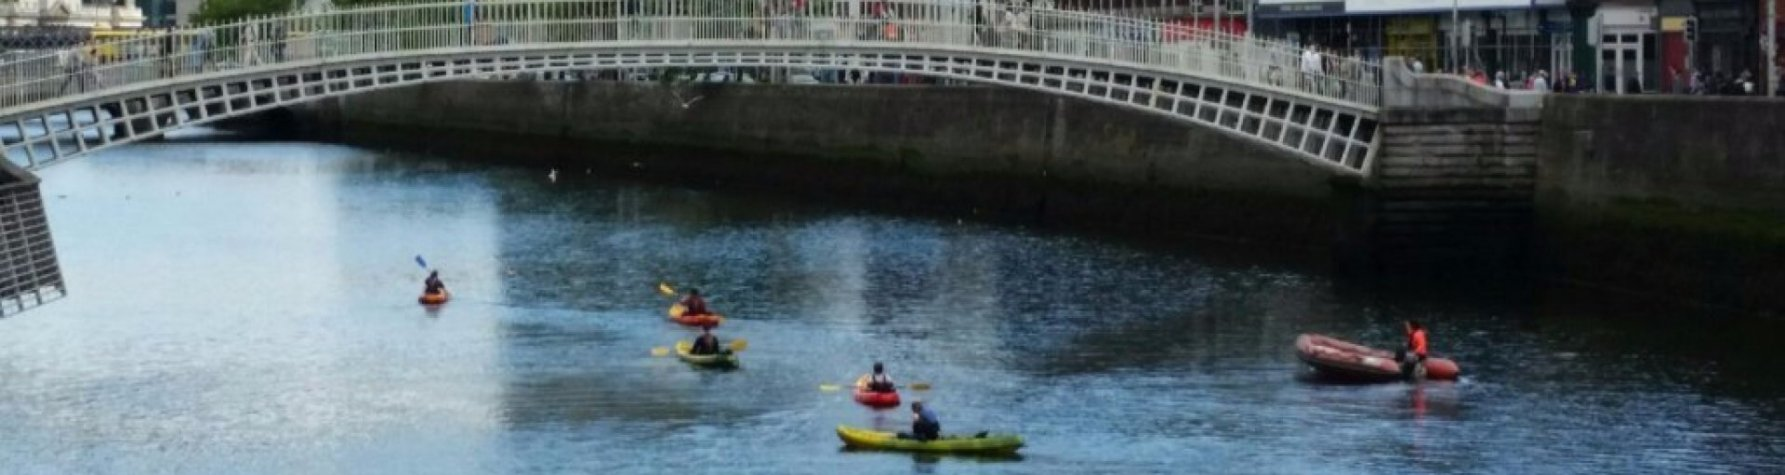 Dublin's famous river Liffey explored via kayak